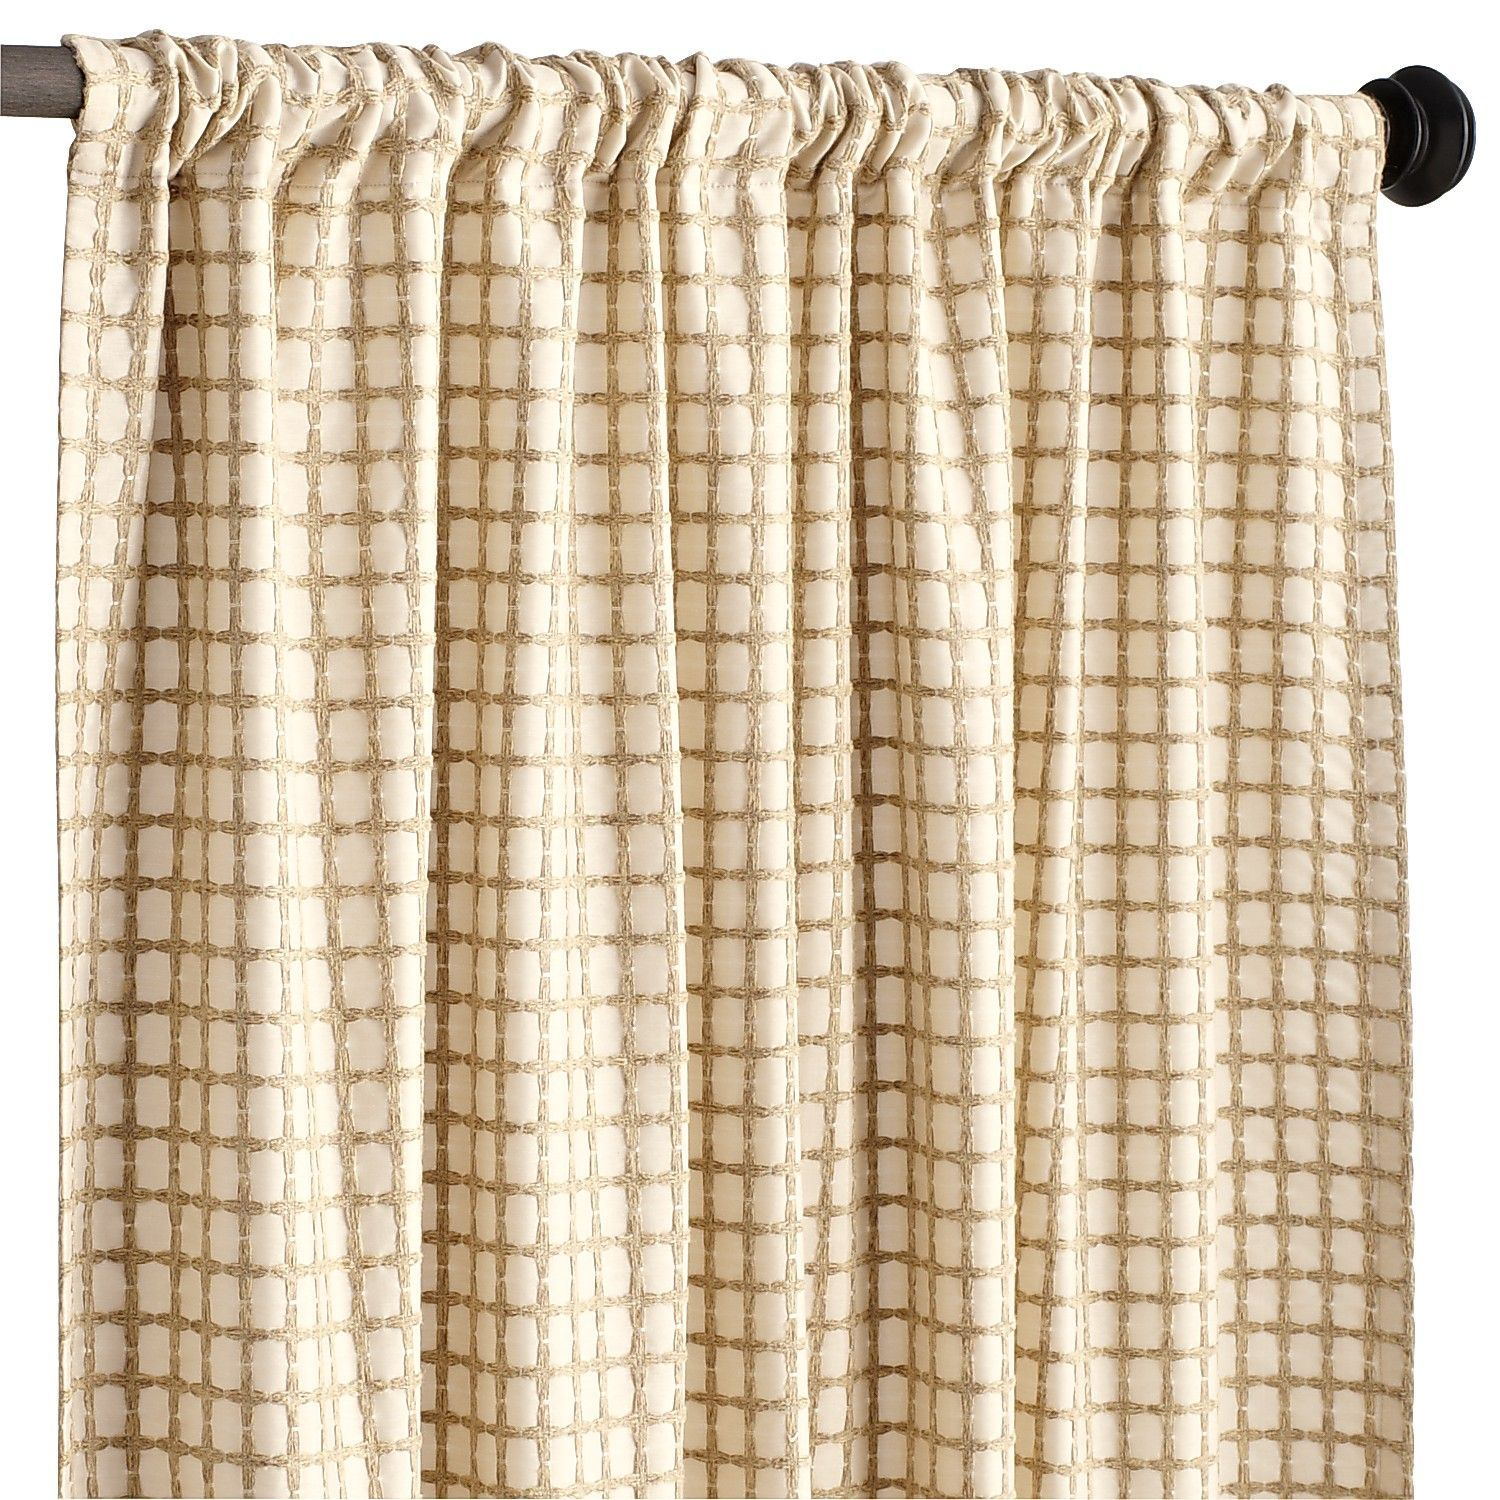 Textured Waffle Natural Curtain | Curtains, Textured and 96"|1500|1500|?|a2f33f3e1189803ba529f7039bb3d613|False|UNLIKELY|0.3507266640663147